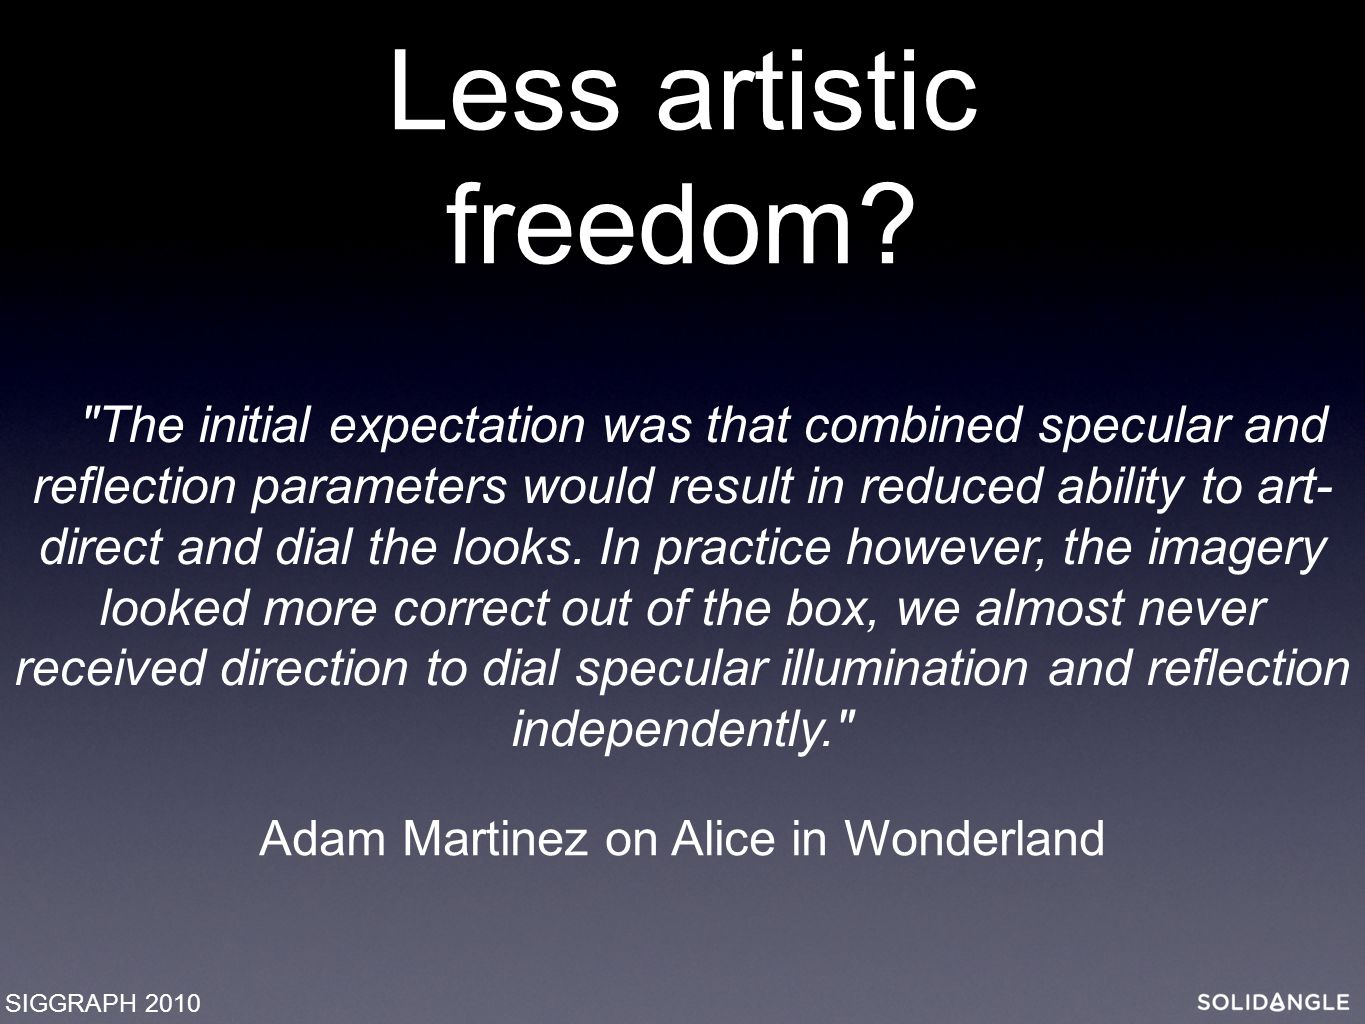 Less artistic freedom.